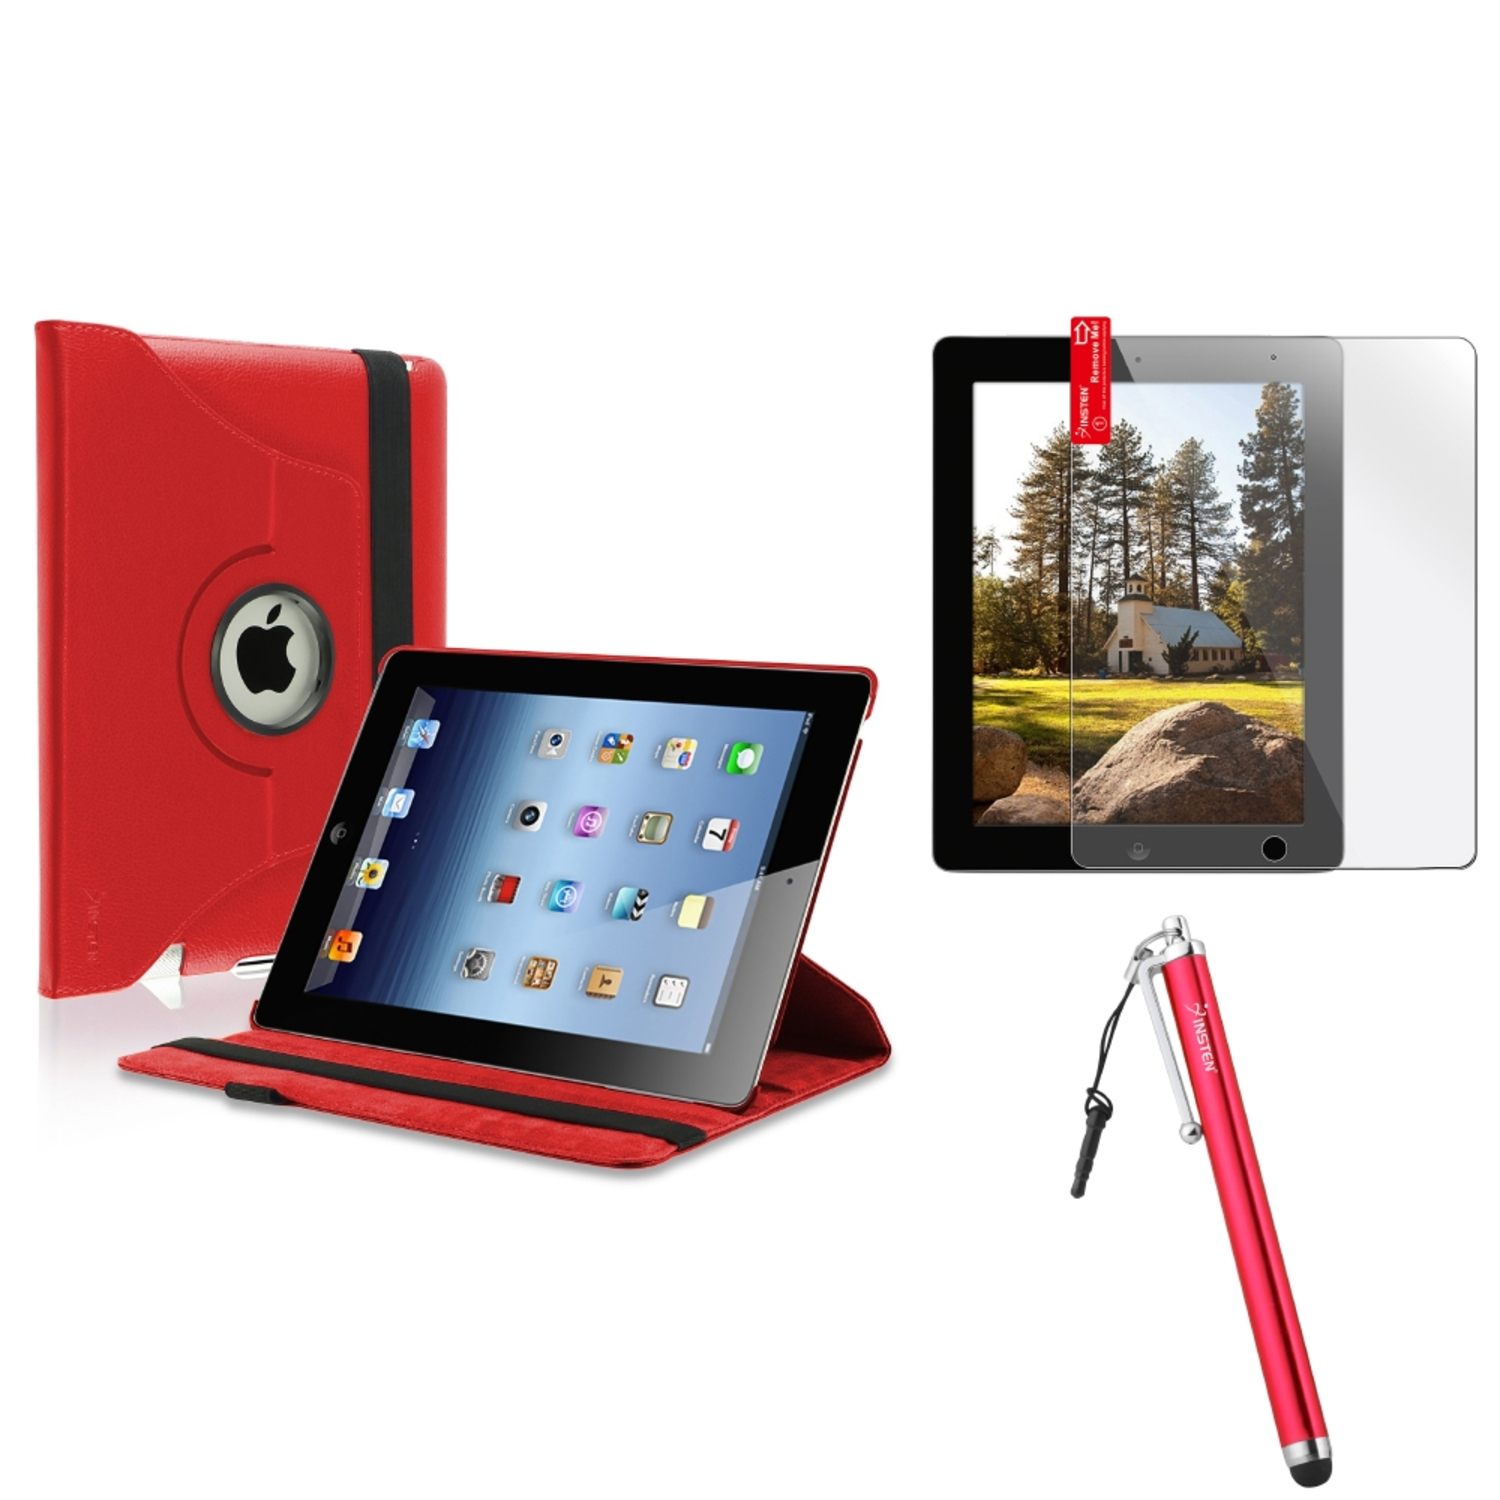 Insten For Apple iPad 4 4th 3 3rd 2 2nd 360 Rotating Leather Case Cover Swivel Stand Red (Supports Auto Sleep/Wake)